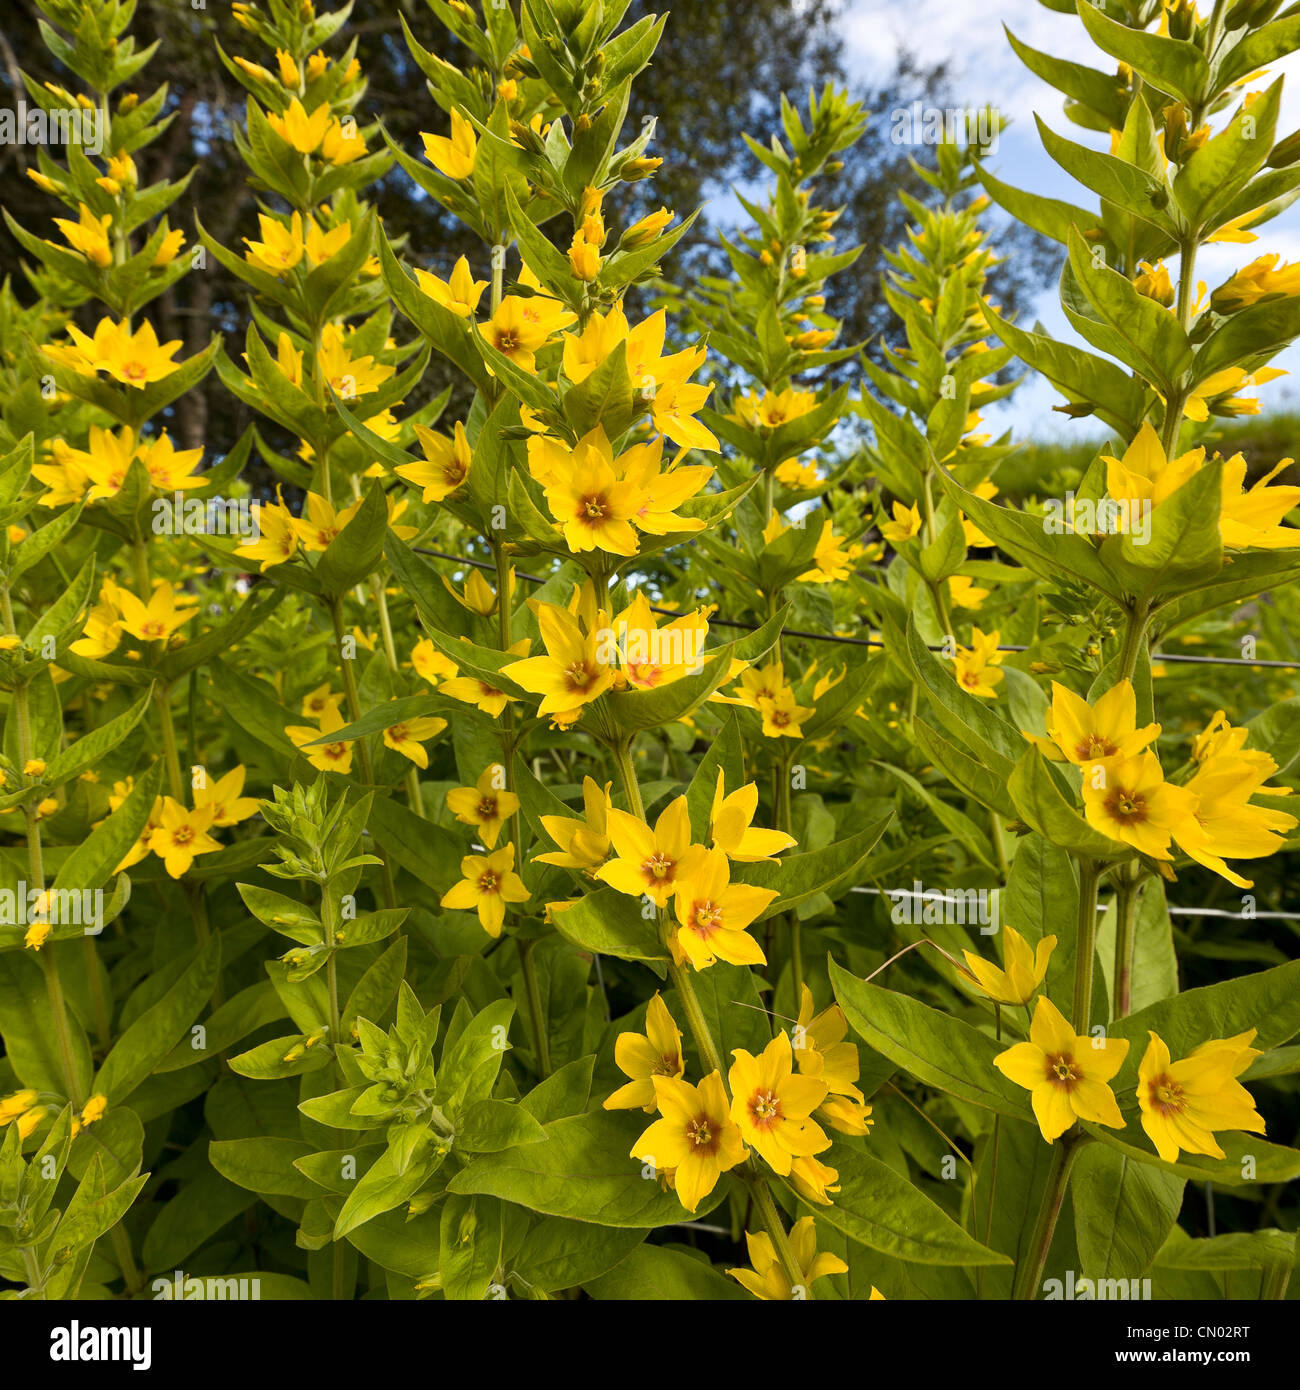 Yellow annual flowers in garden iceland stock photo 47330748 alamy yellow annual flowers in garden iceland izmirmasajfo Image collections